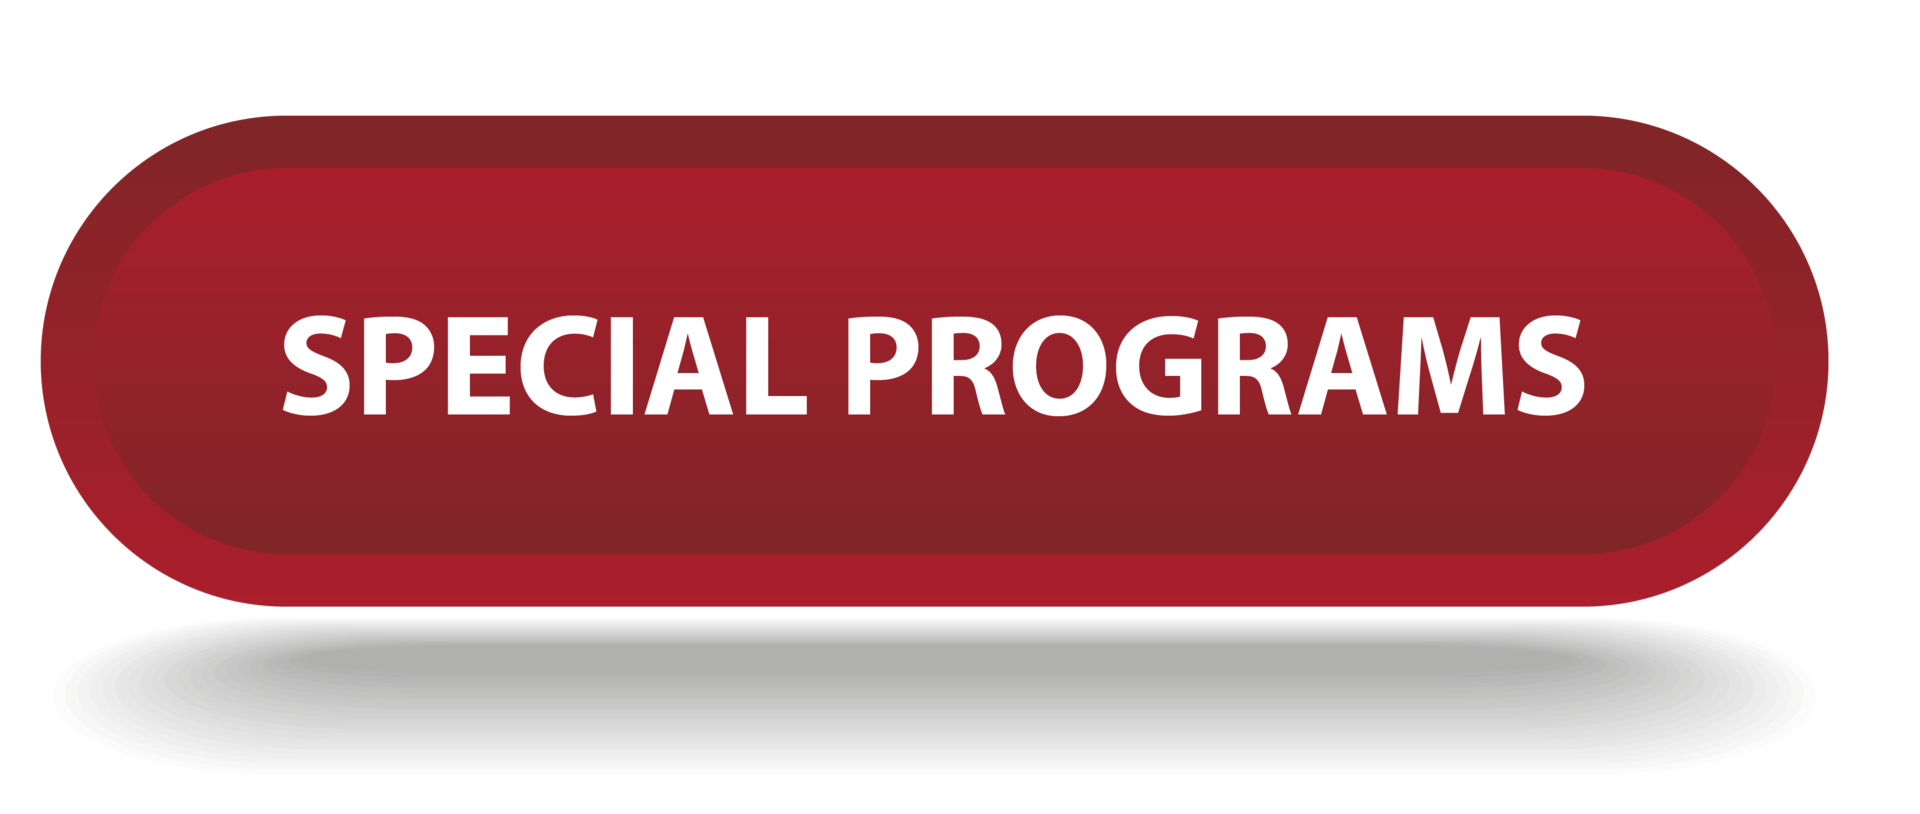 Special Programs Click Here